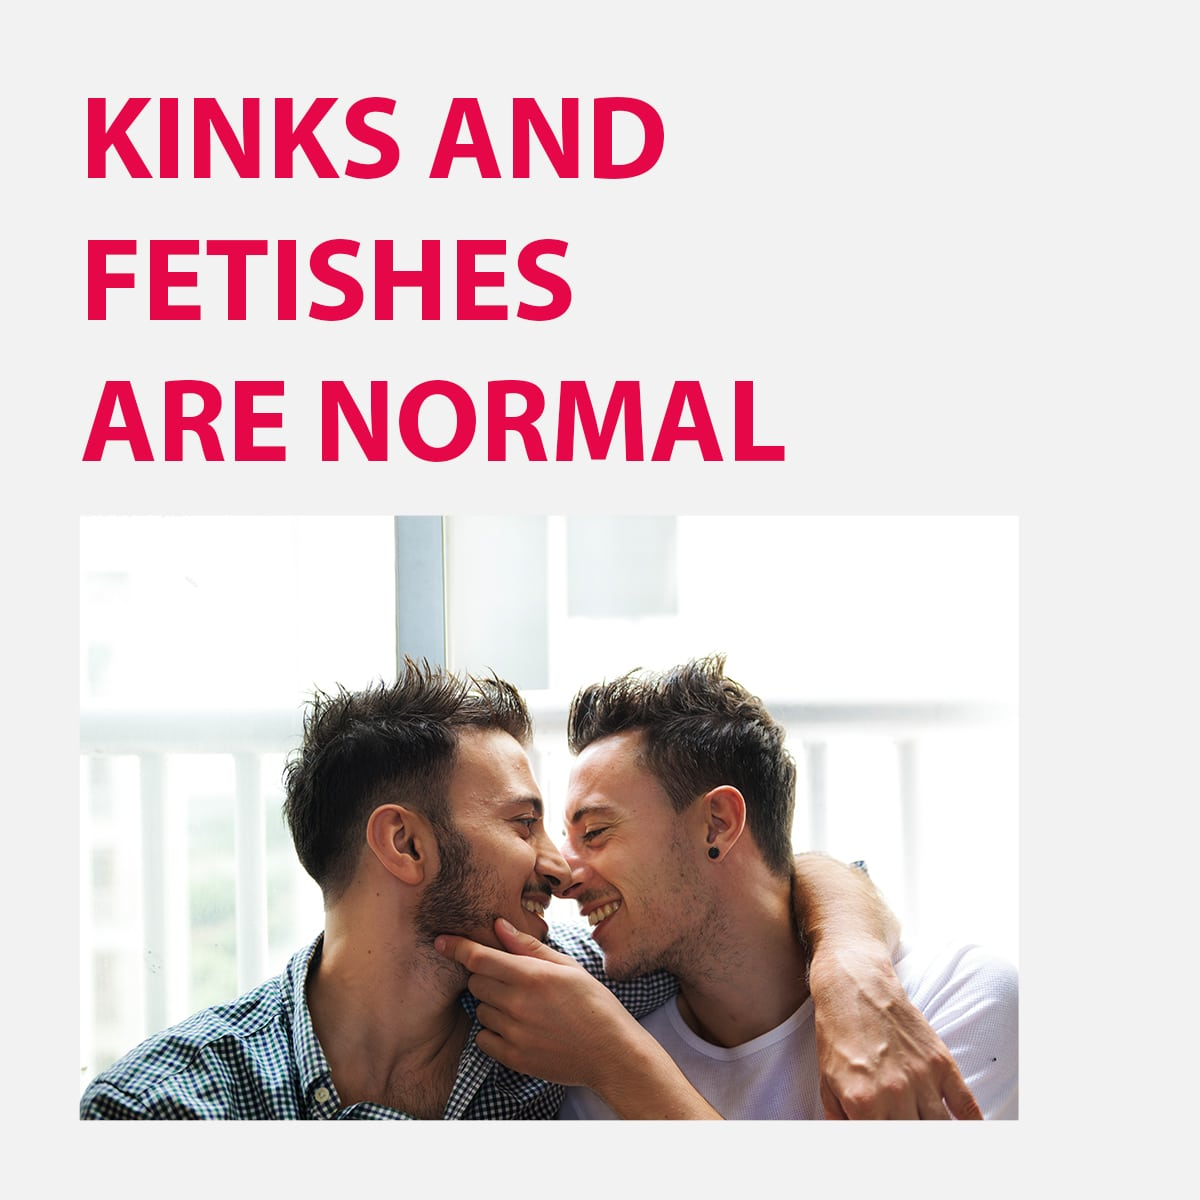 Kinks and fetishes